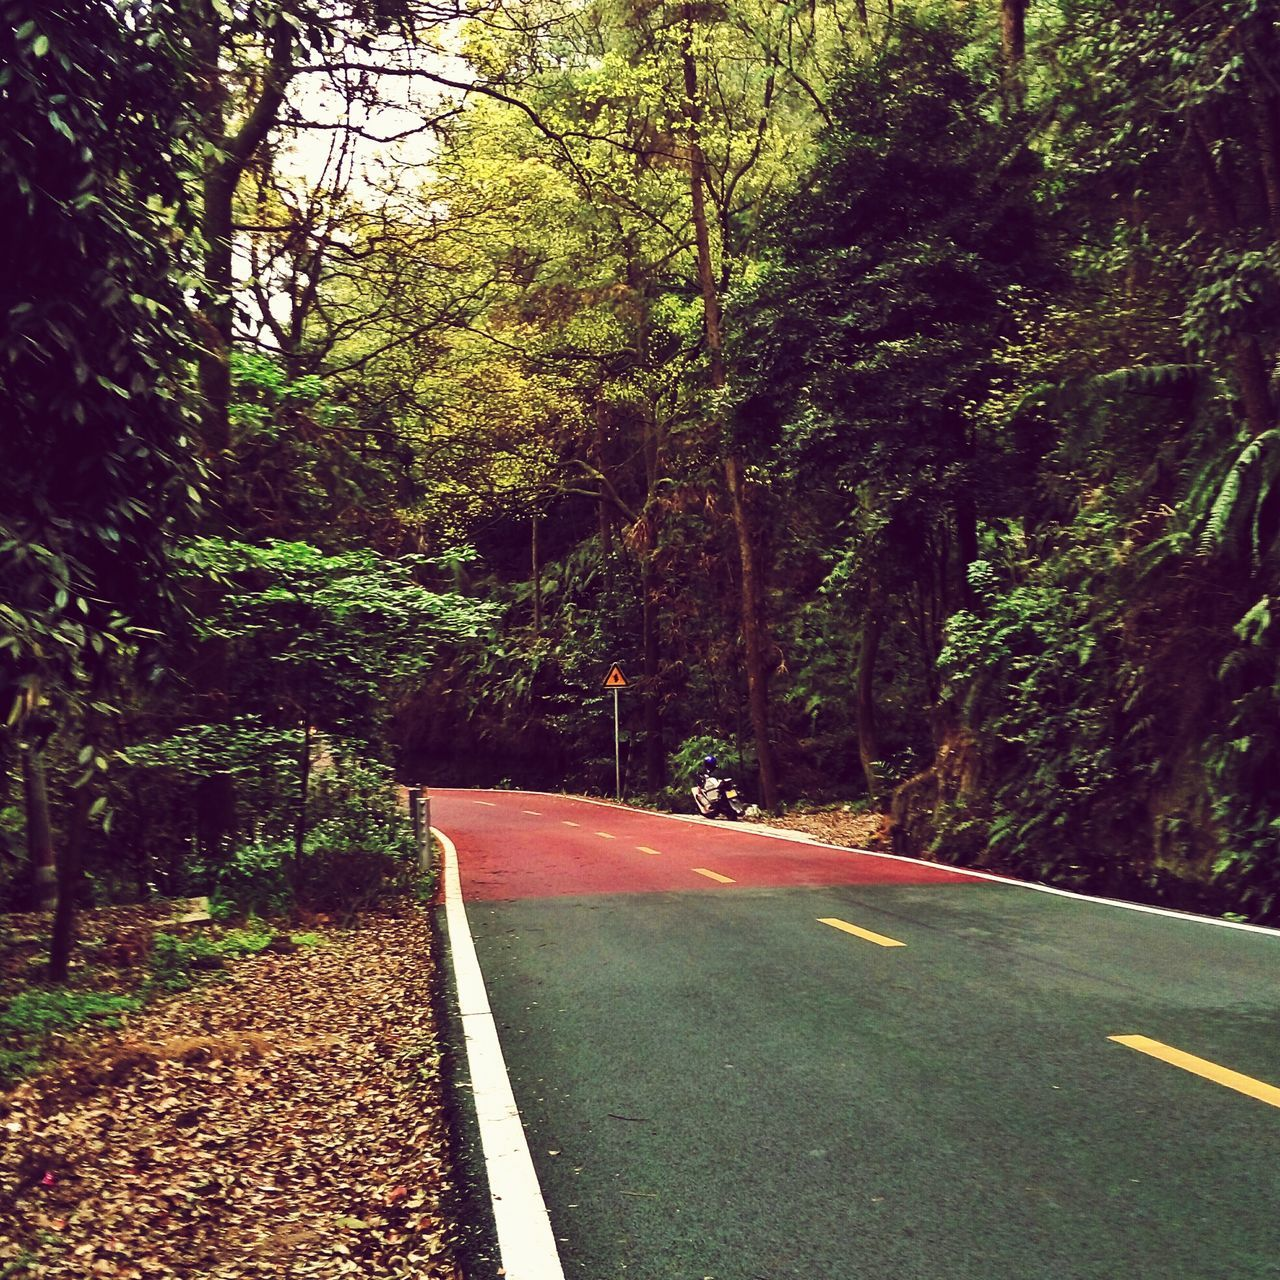 road, tree, transportation, the way forward, nature, tranquility, outdoors, no people, day, forest, growth, beauty in nature